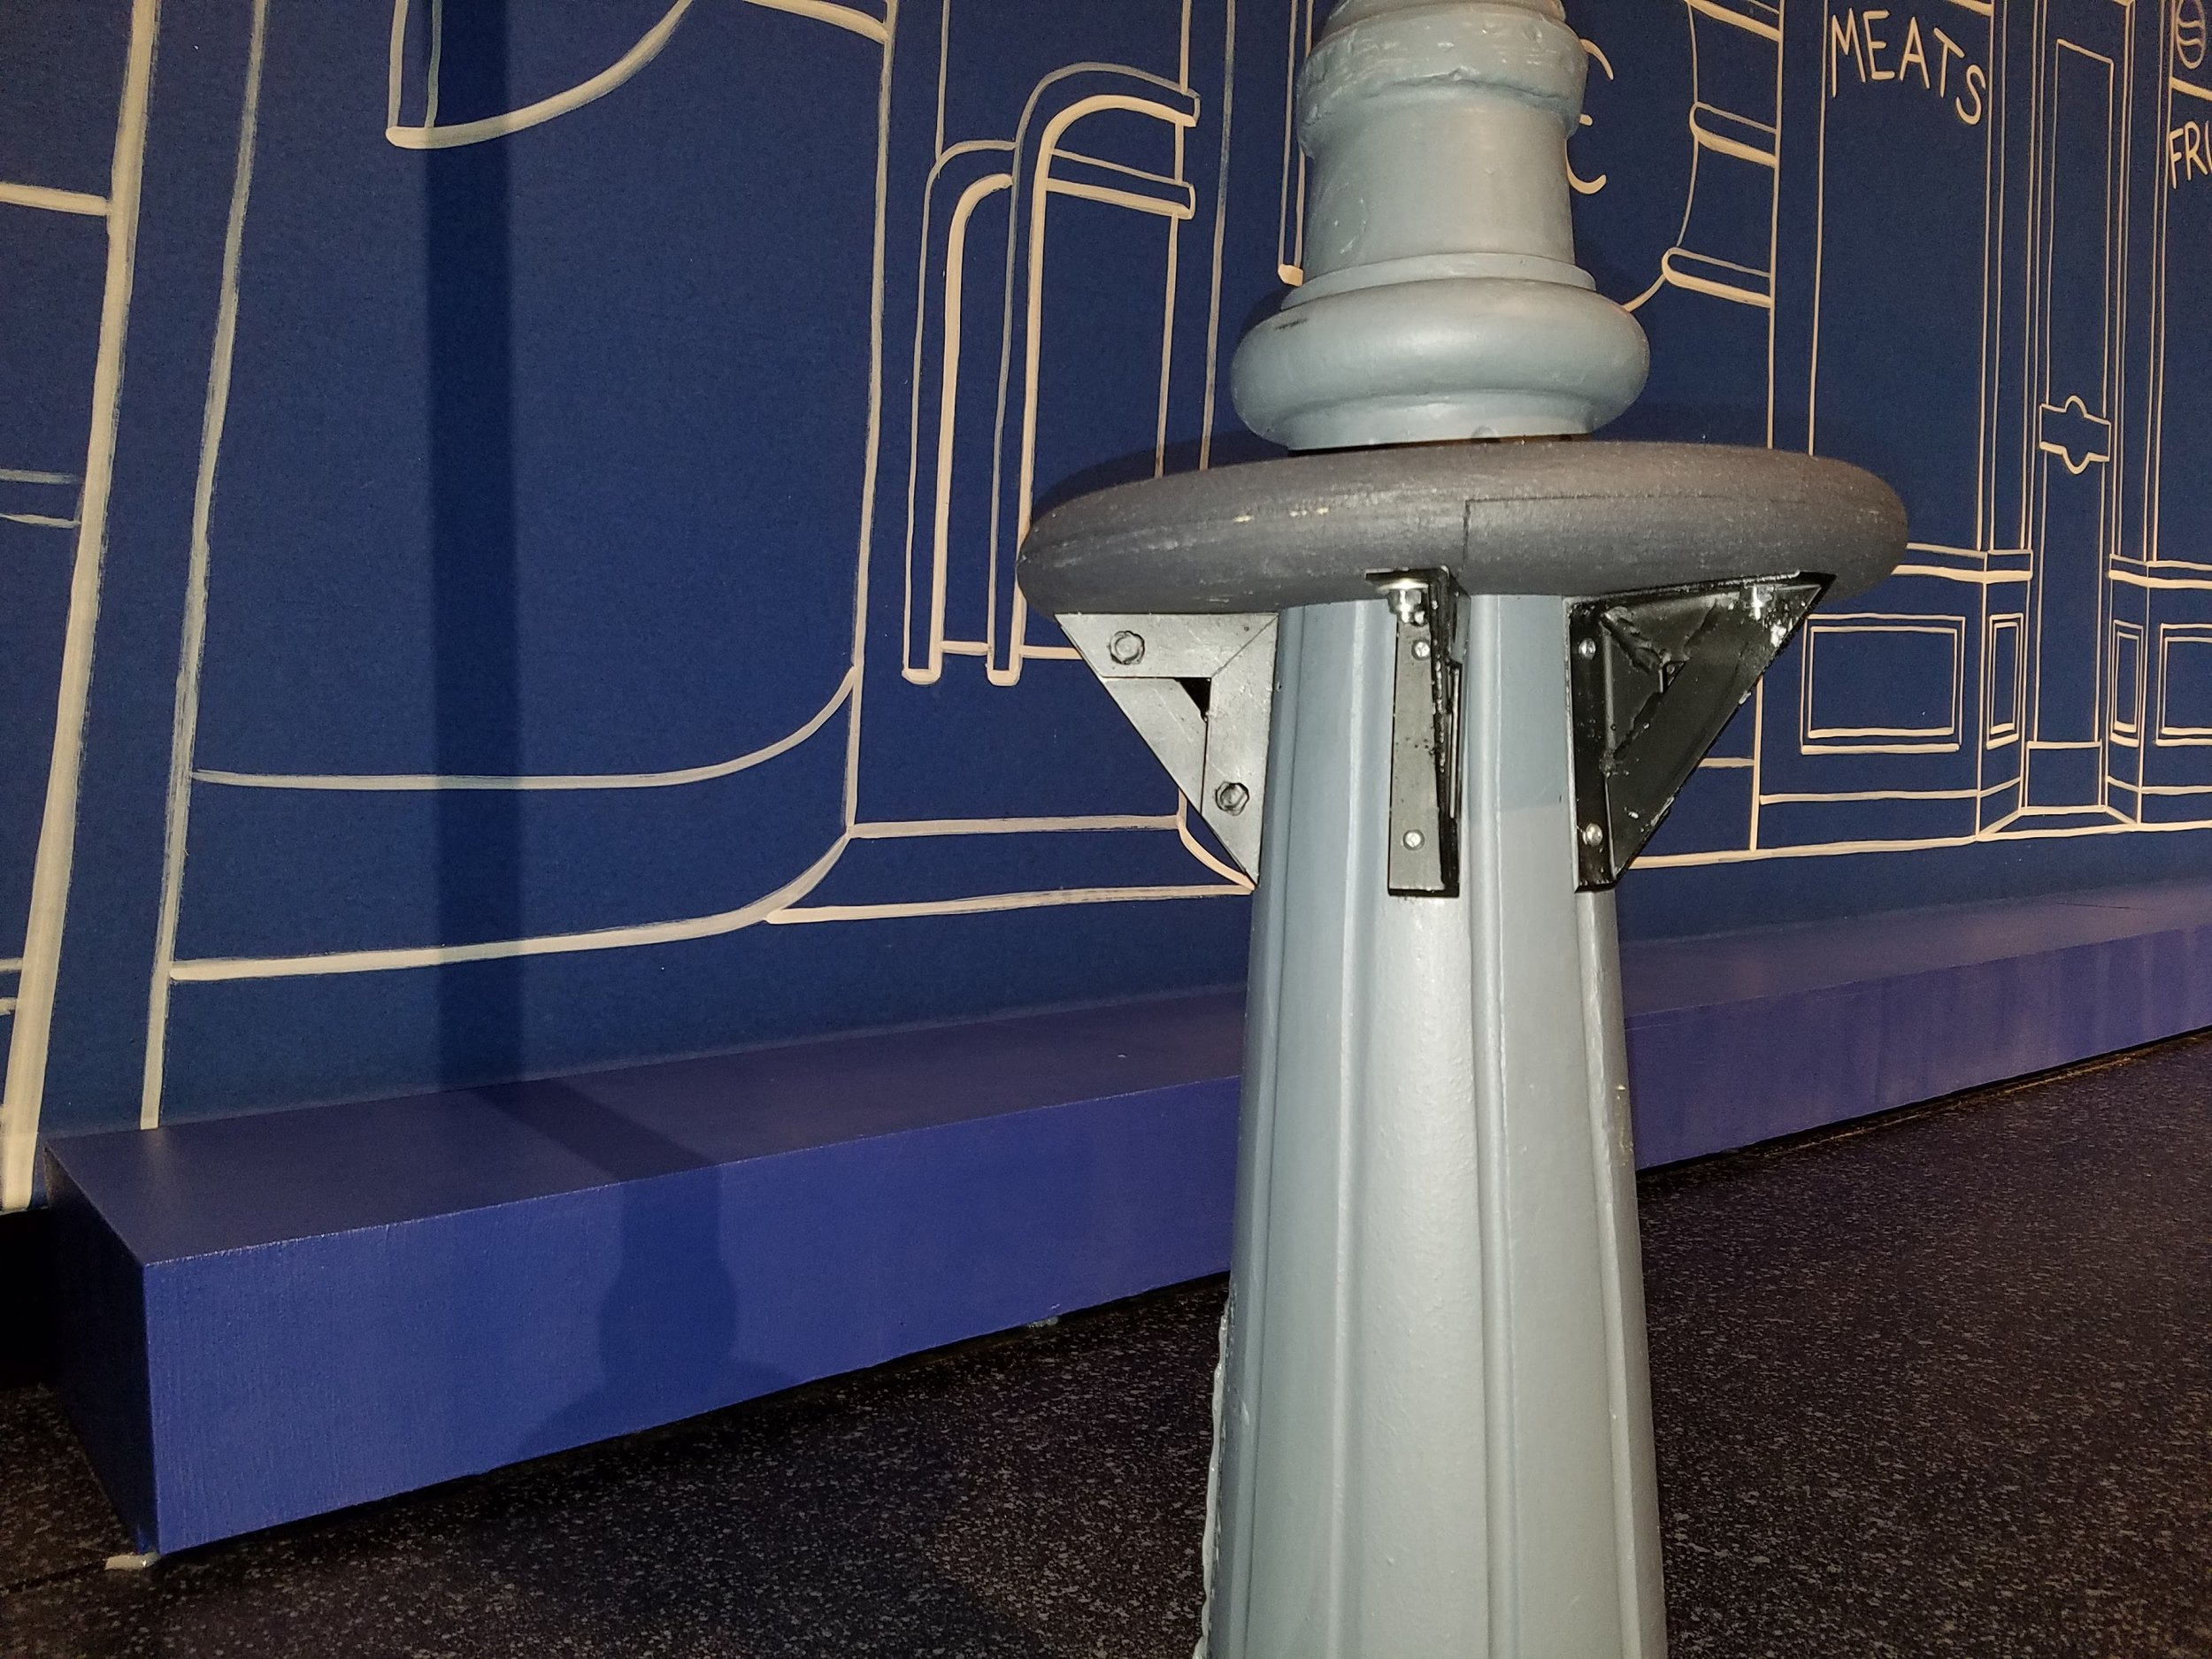 The lamppost as seen on stage with new step attached.